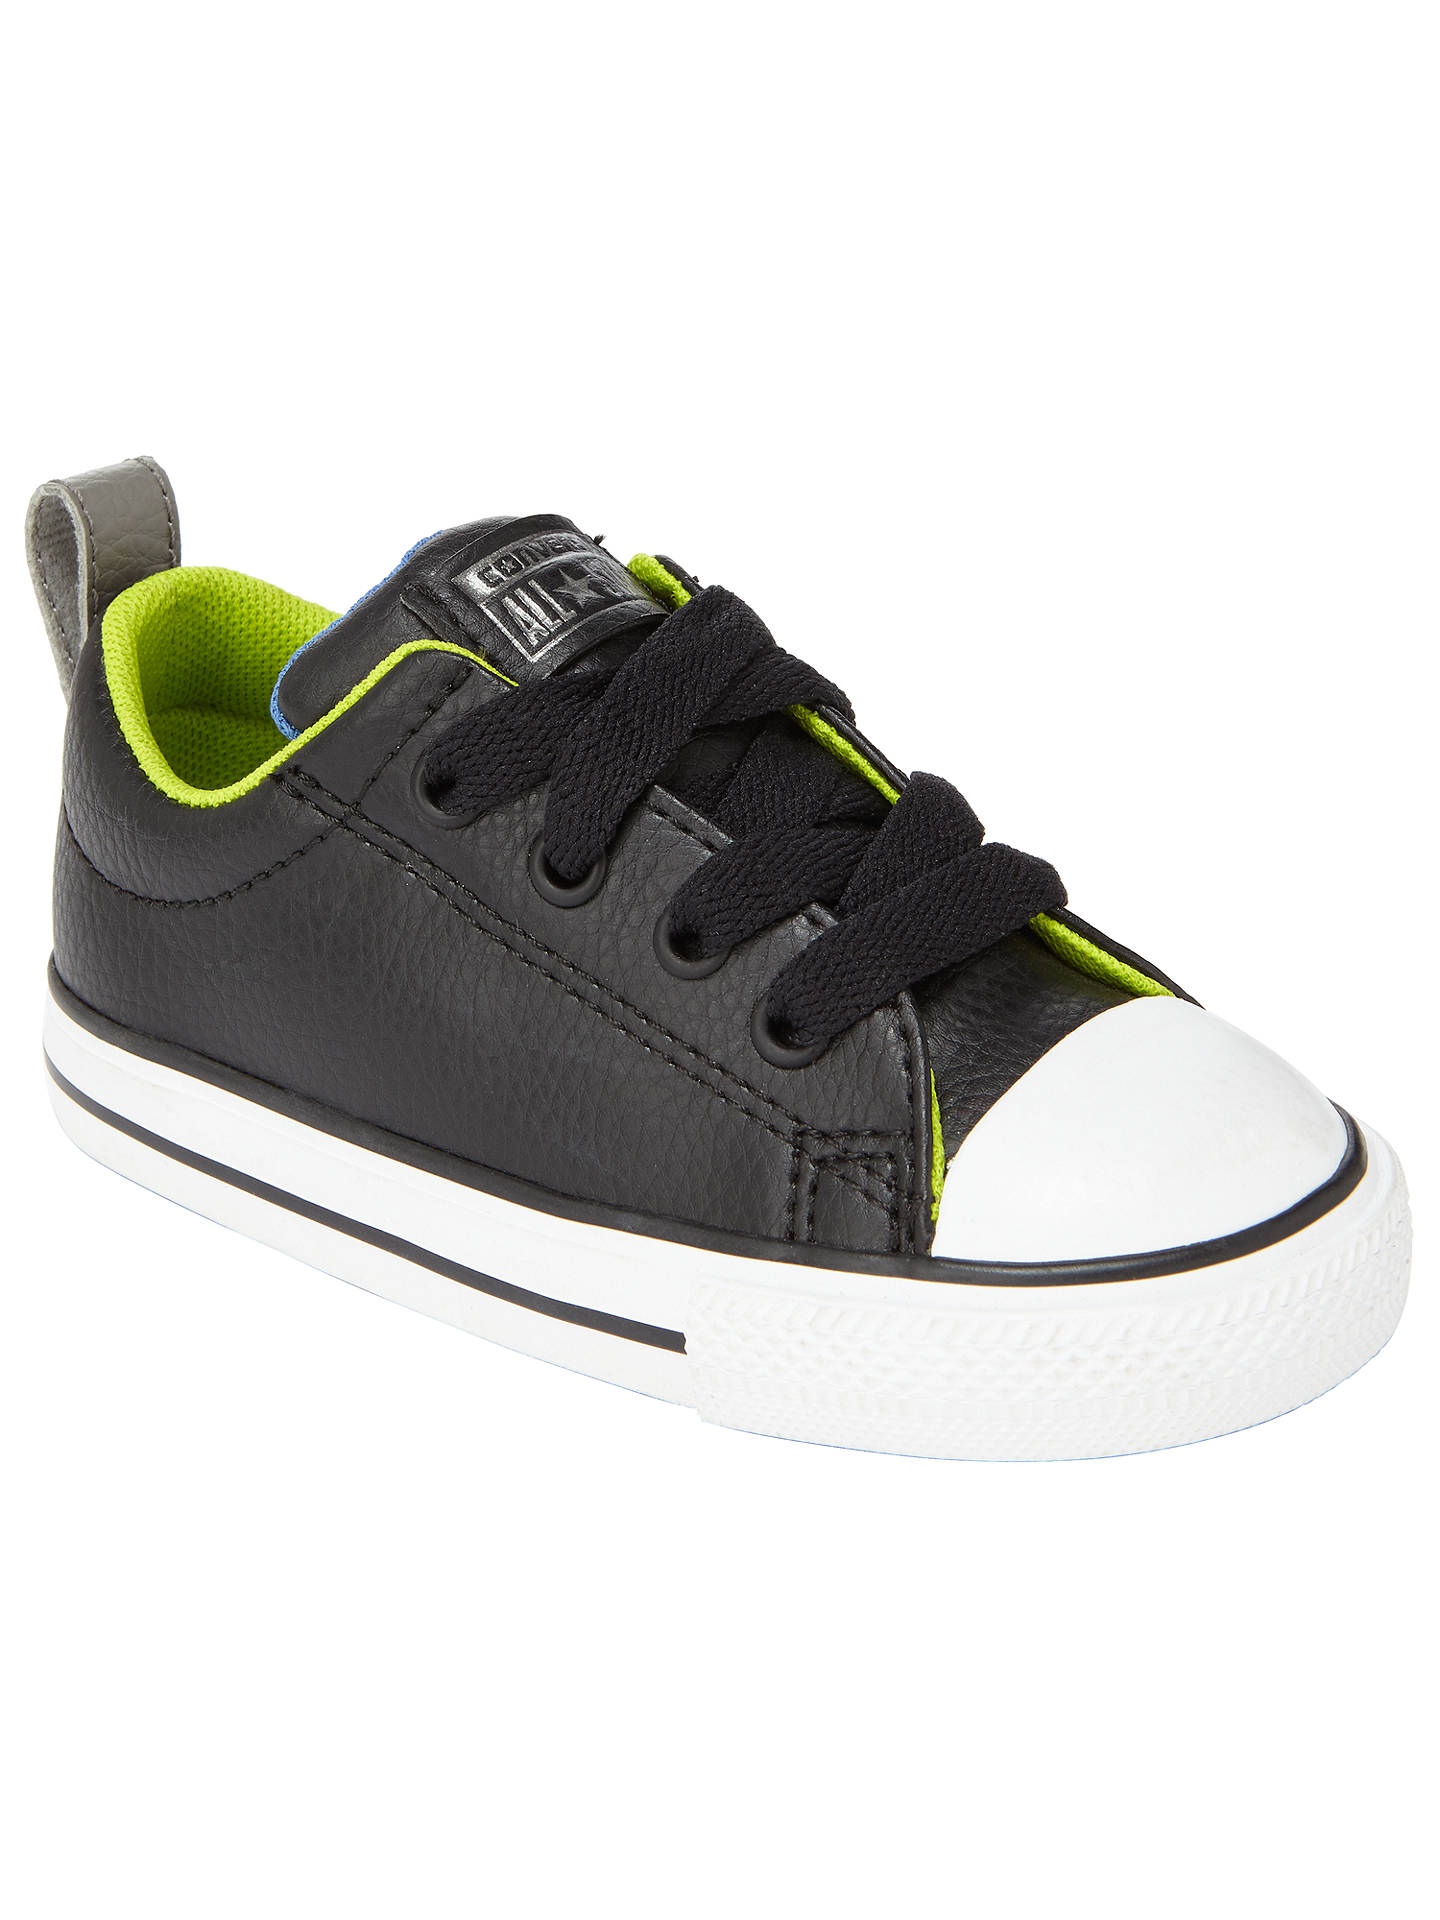 e09ddf6a68ae Buy Converse Children s Chuck Taylor All Star Street Lace Shoes